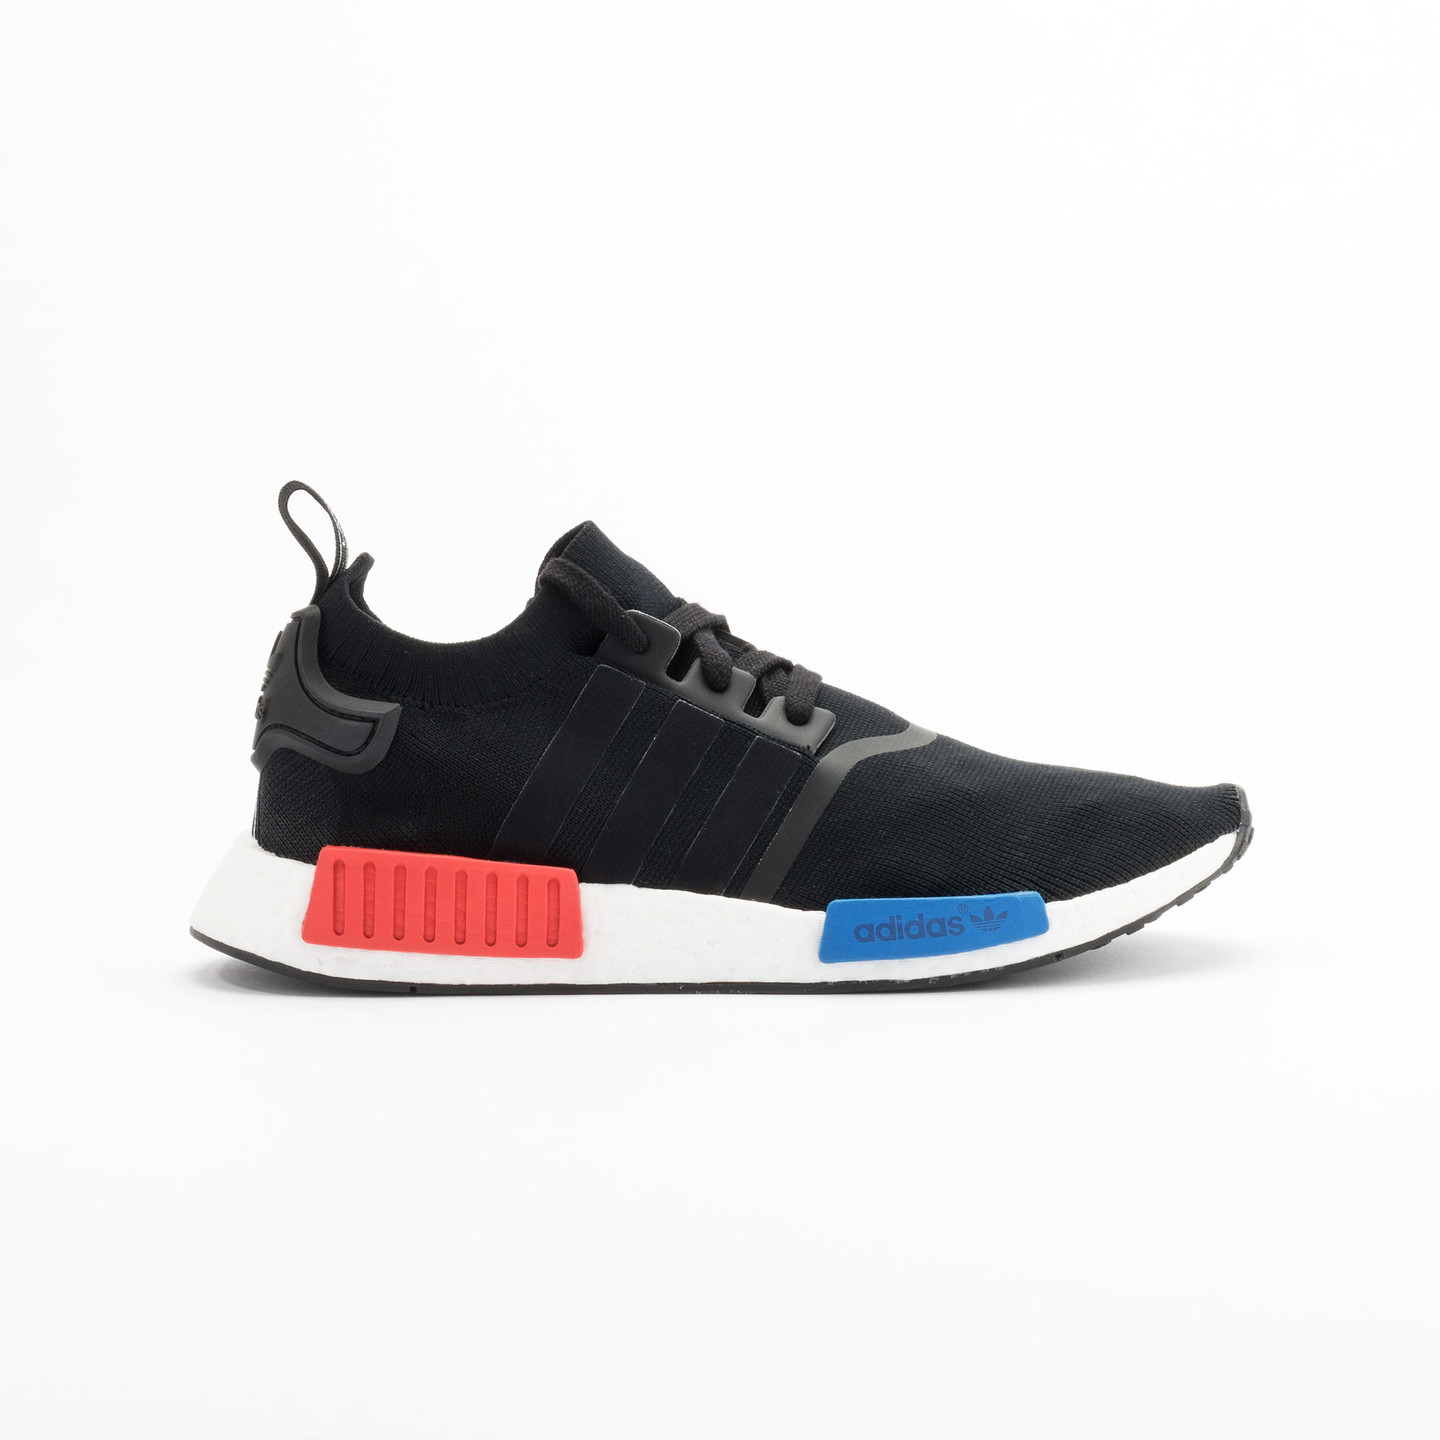 Adidas NMD Runner PK Primeknit Black / Red / Blue / White S79168-36.66